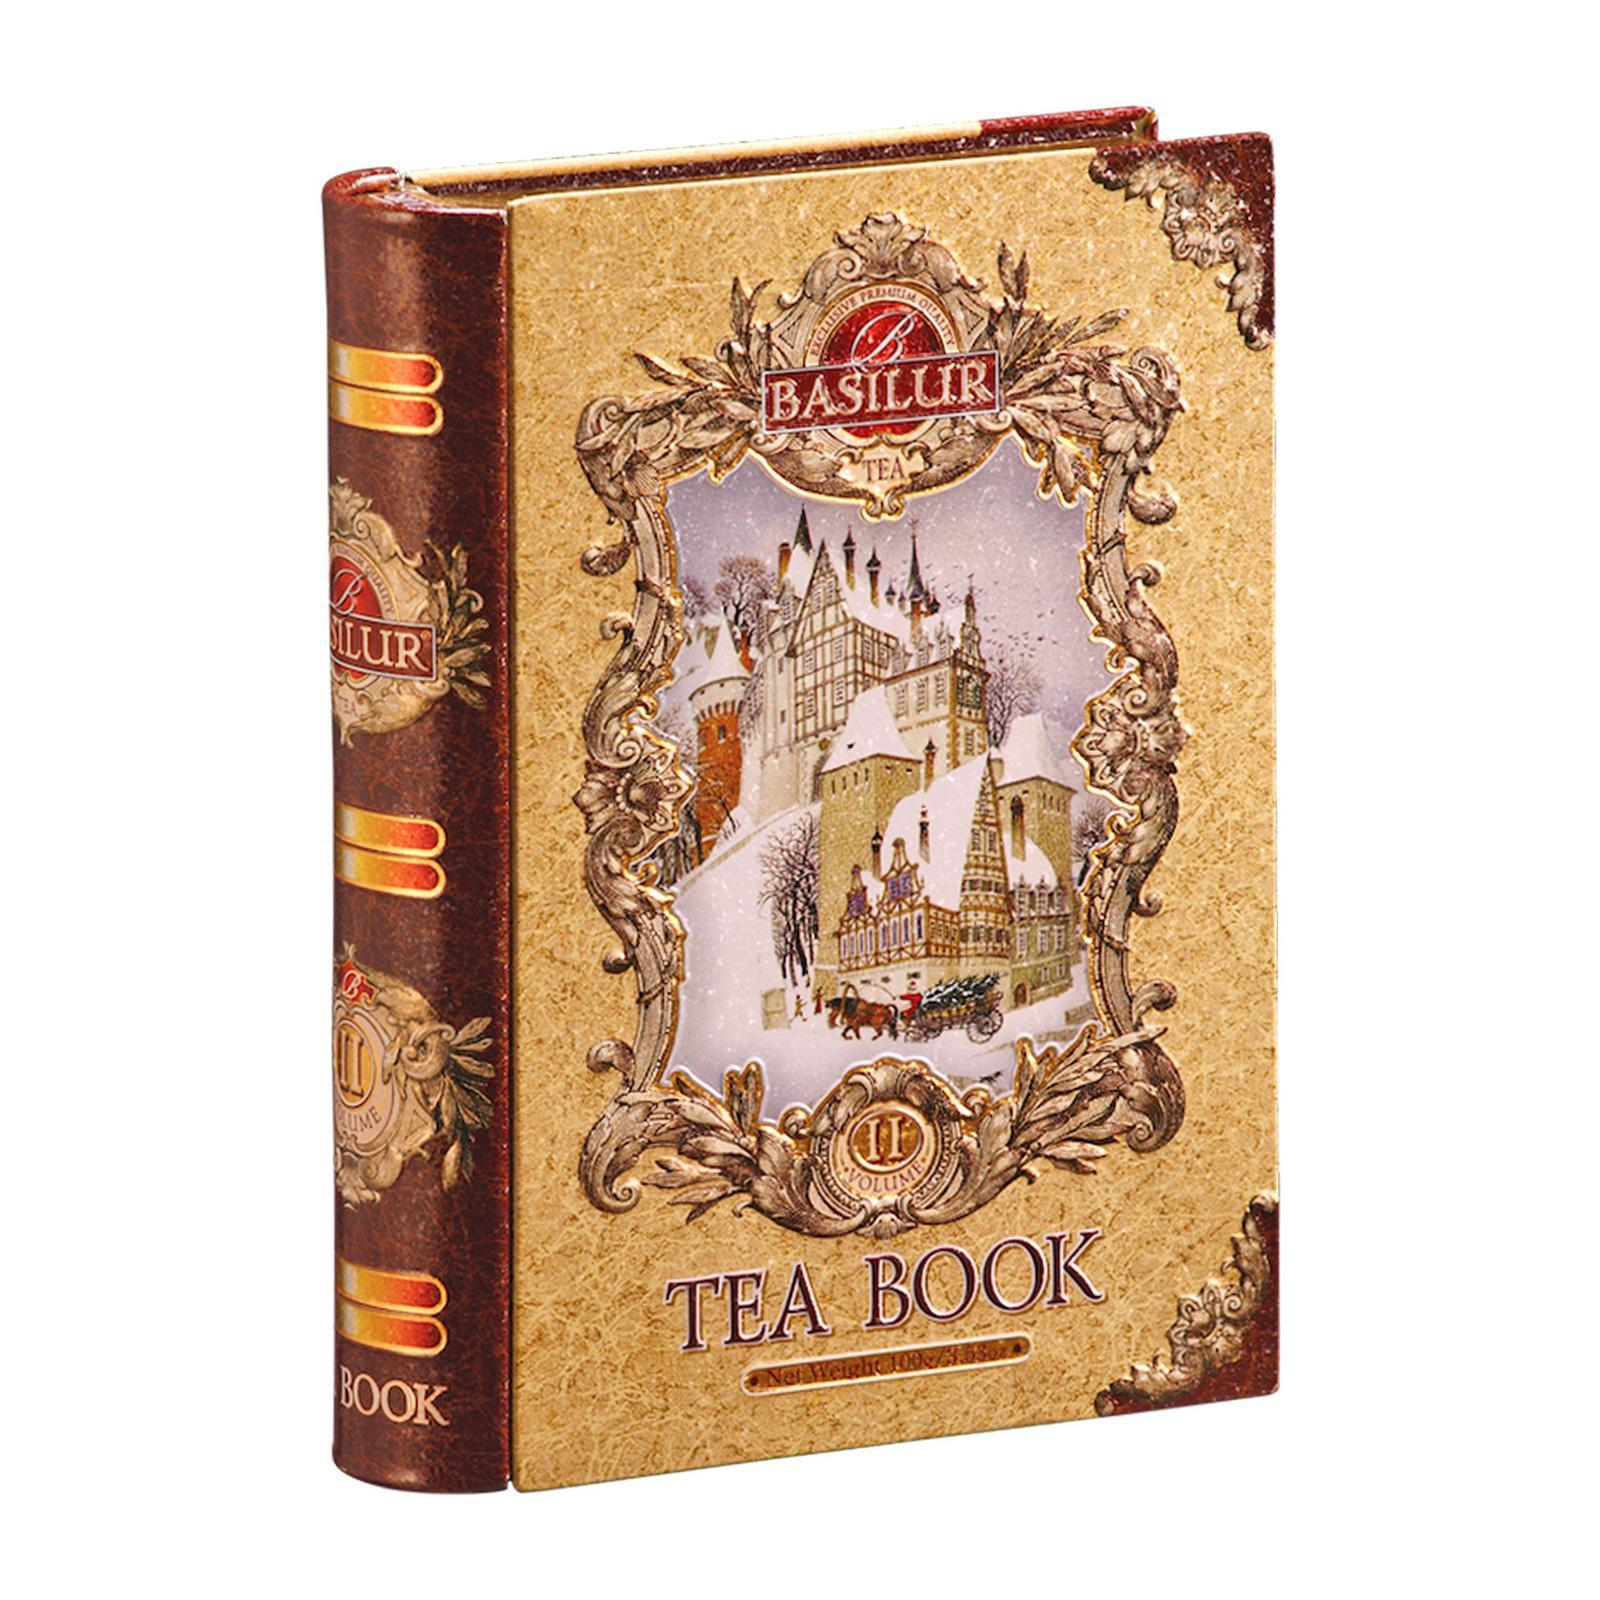 Basilur Tea Book (Christmas Spices Black Tea)